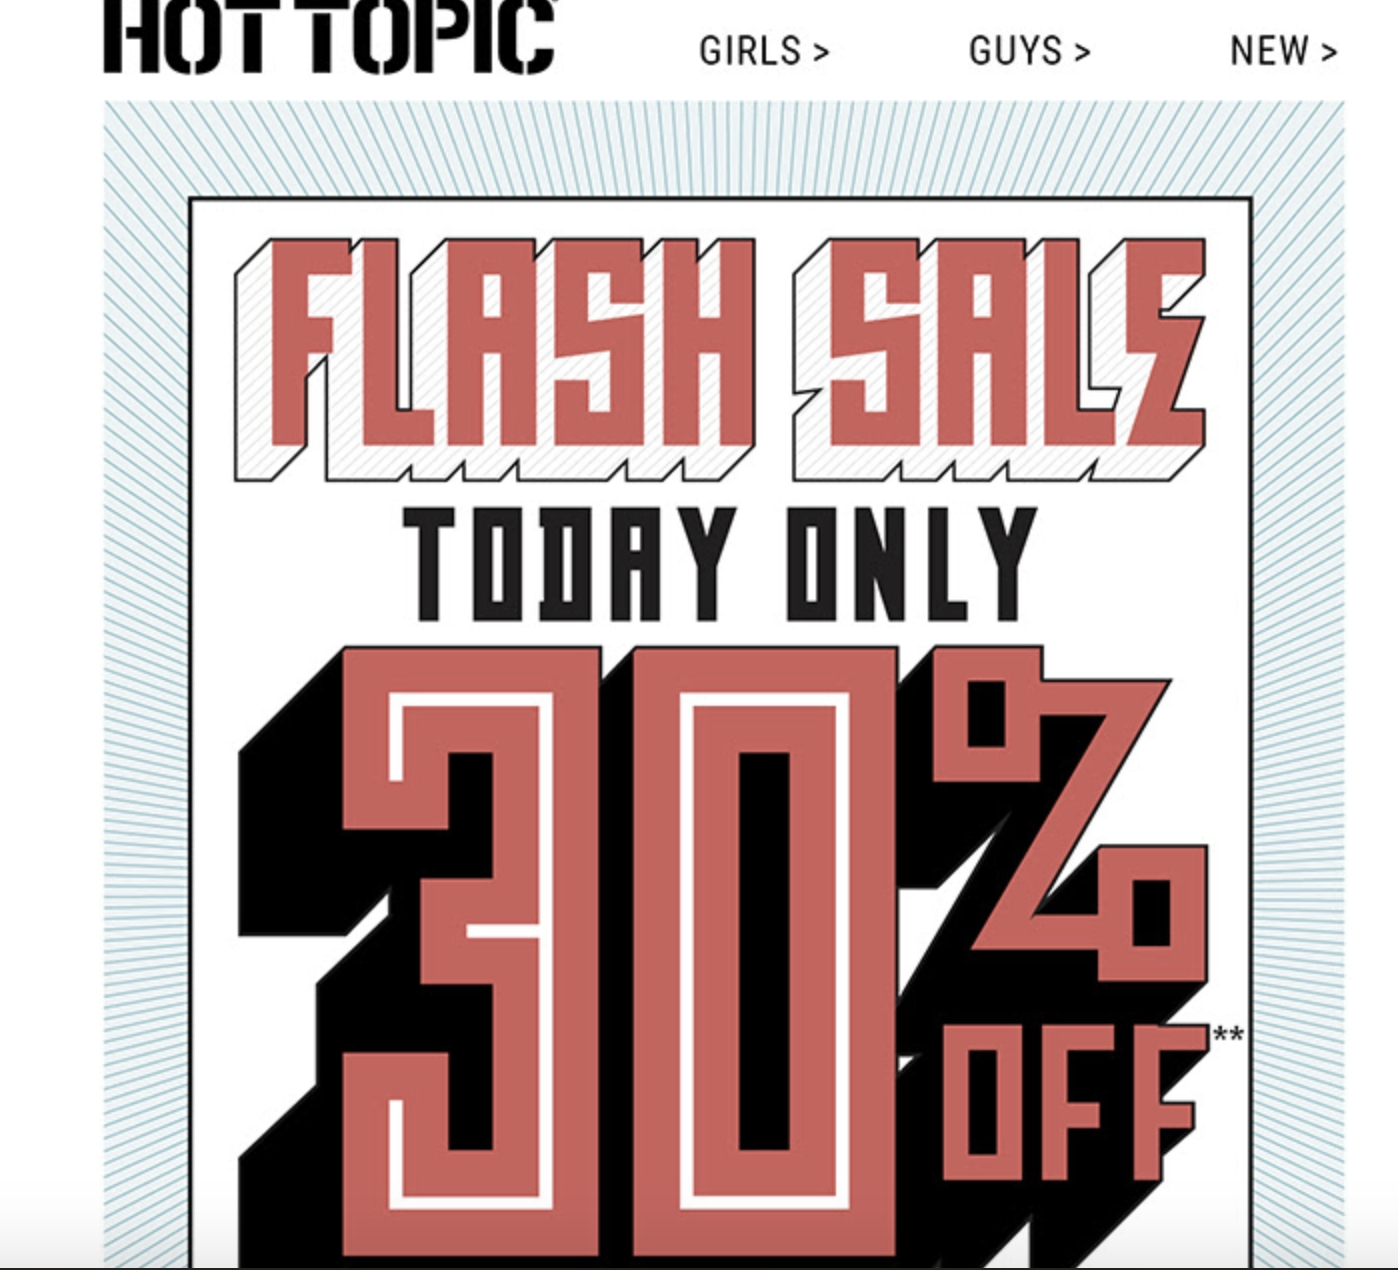 Hot topic discount coupons